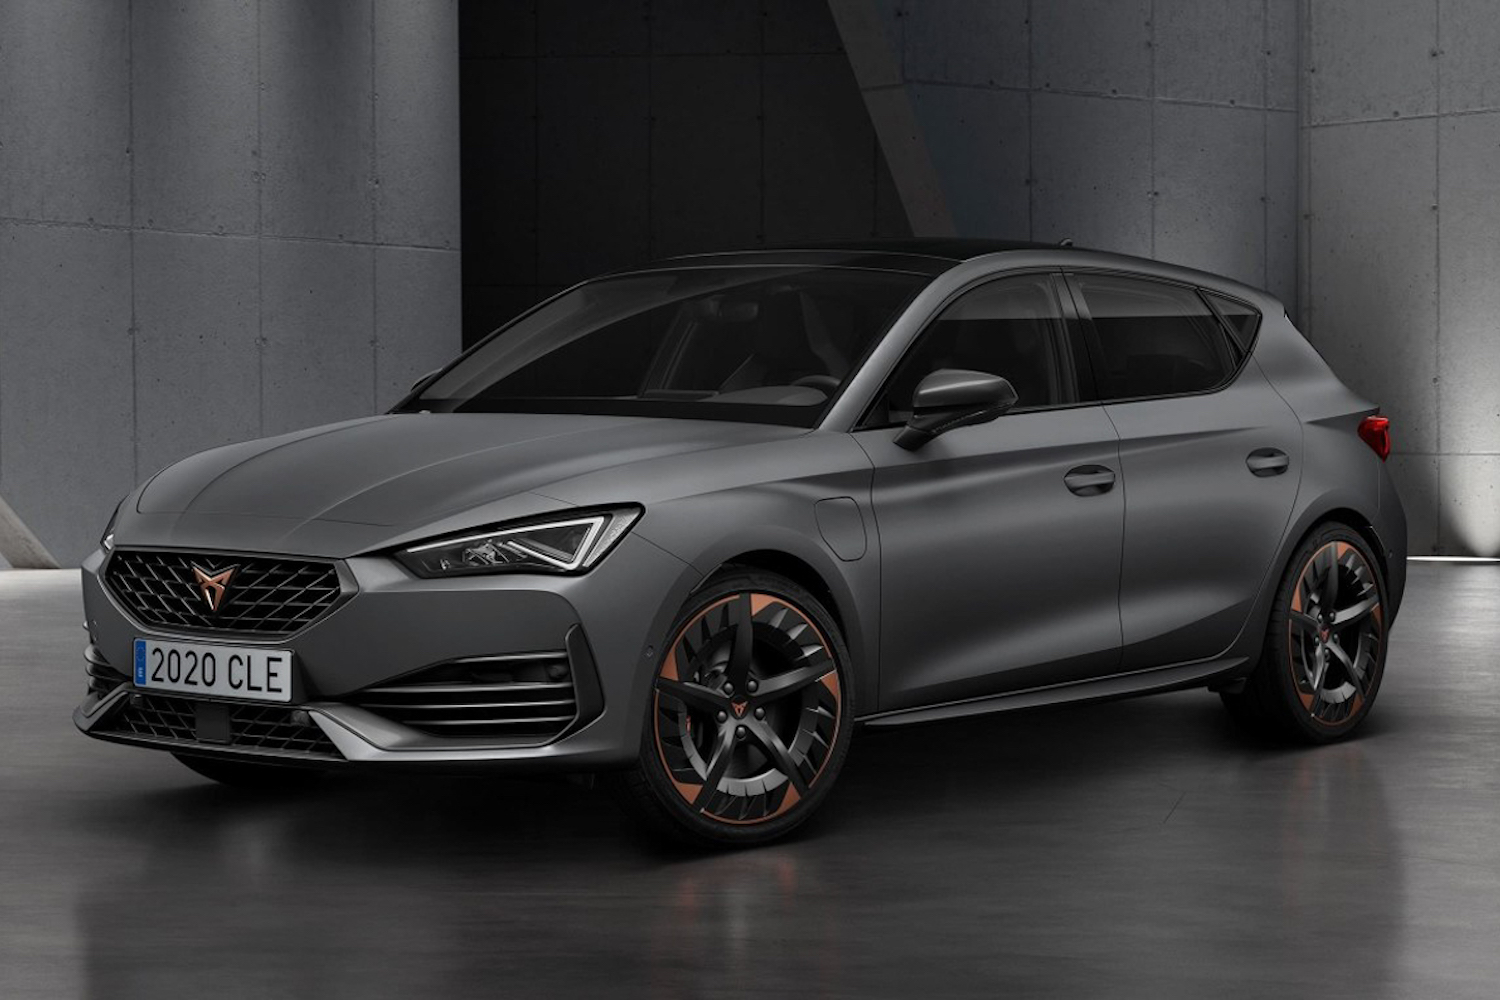 Car News | Cupra Leon revealed with hybrid power | CompleteCar.ie